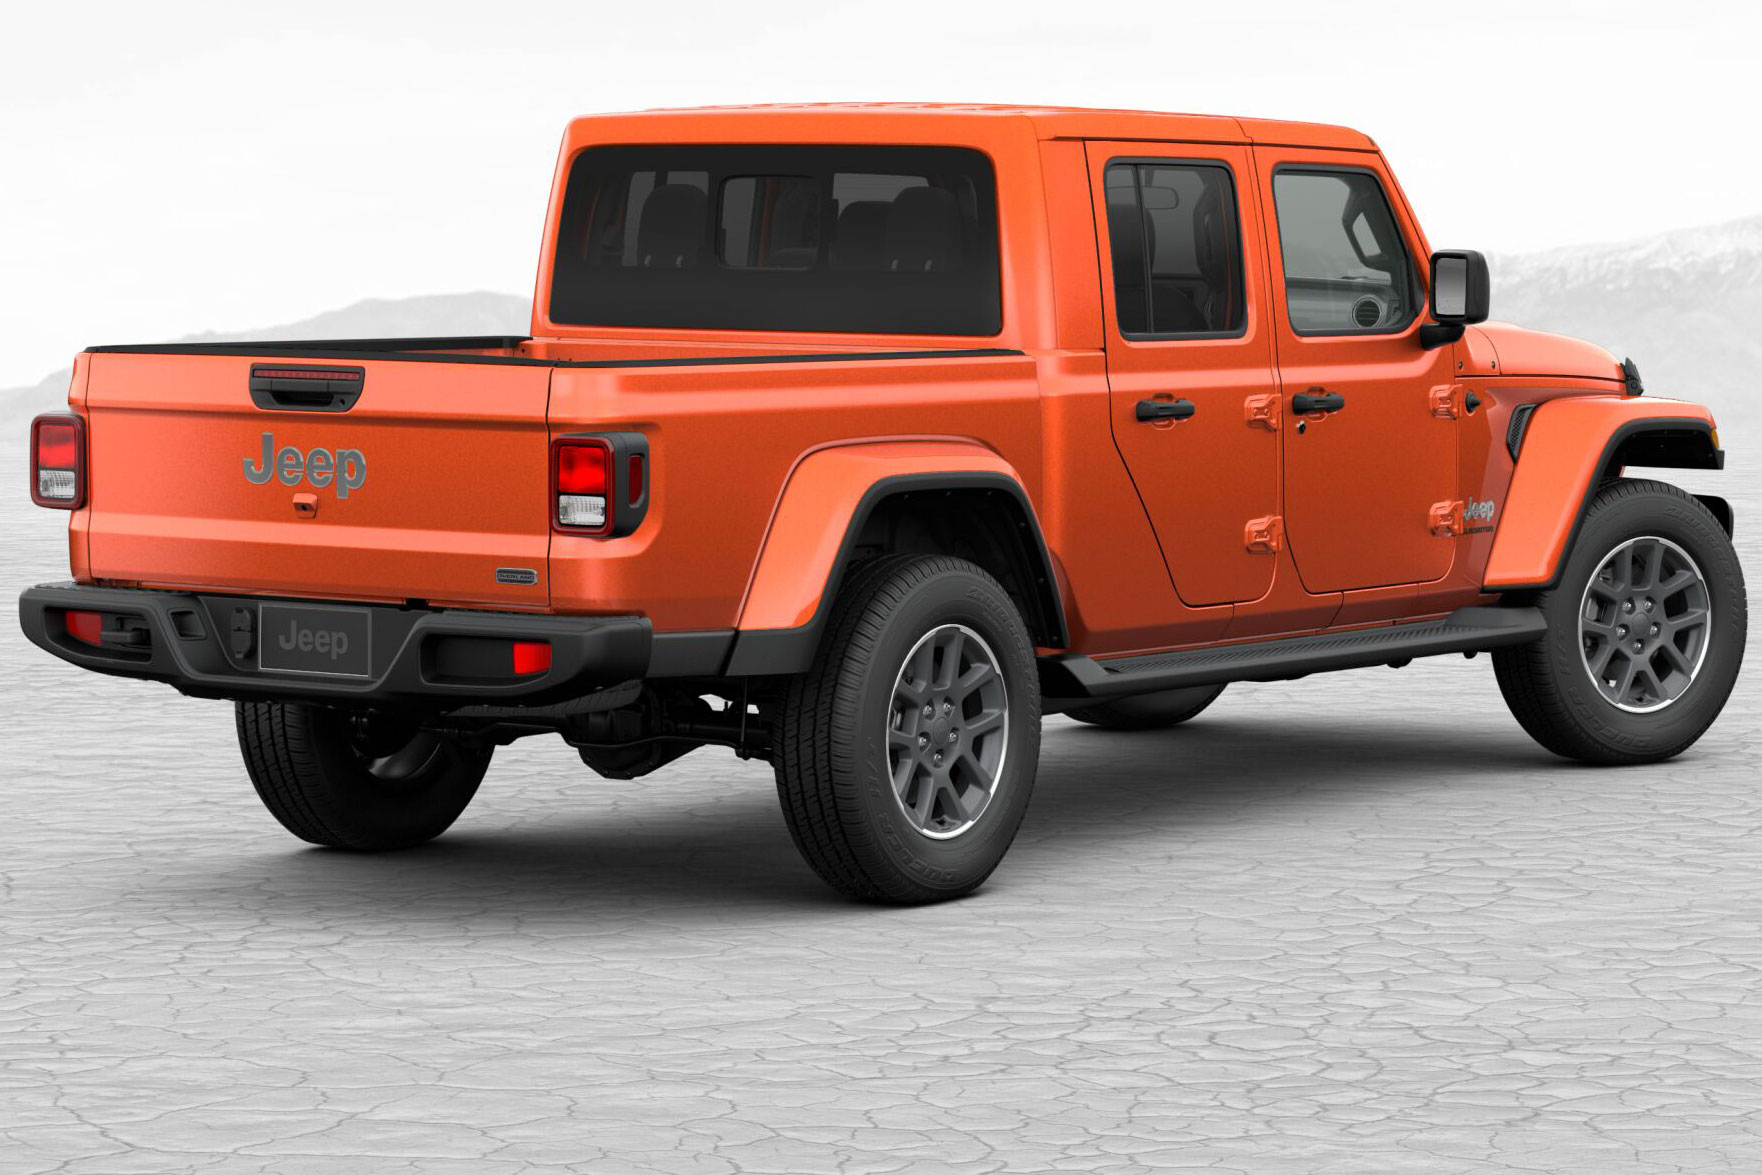 Jeep Gladiator Punk'n orange